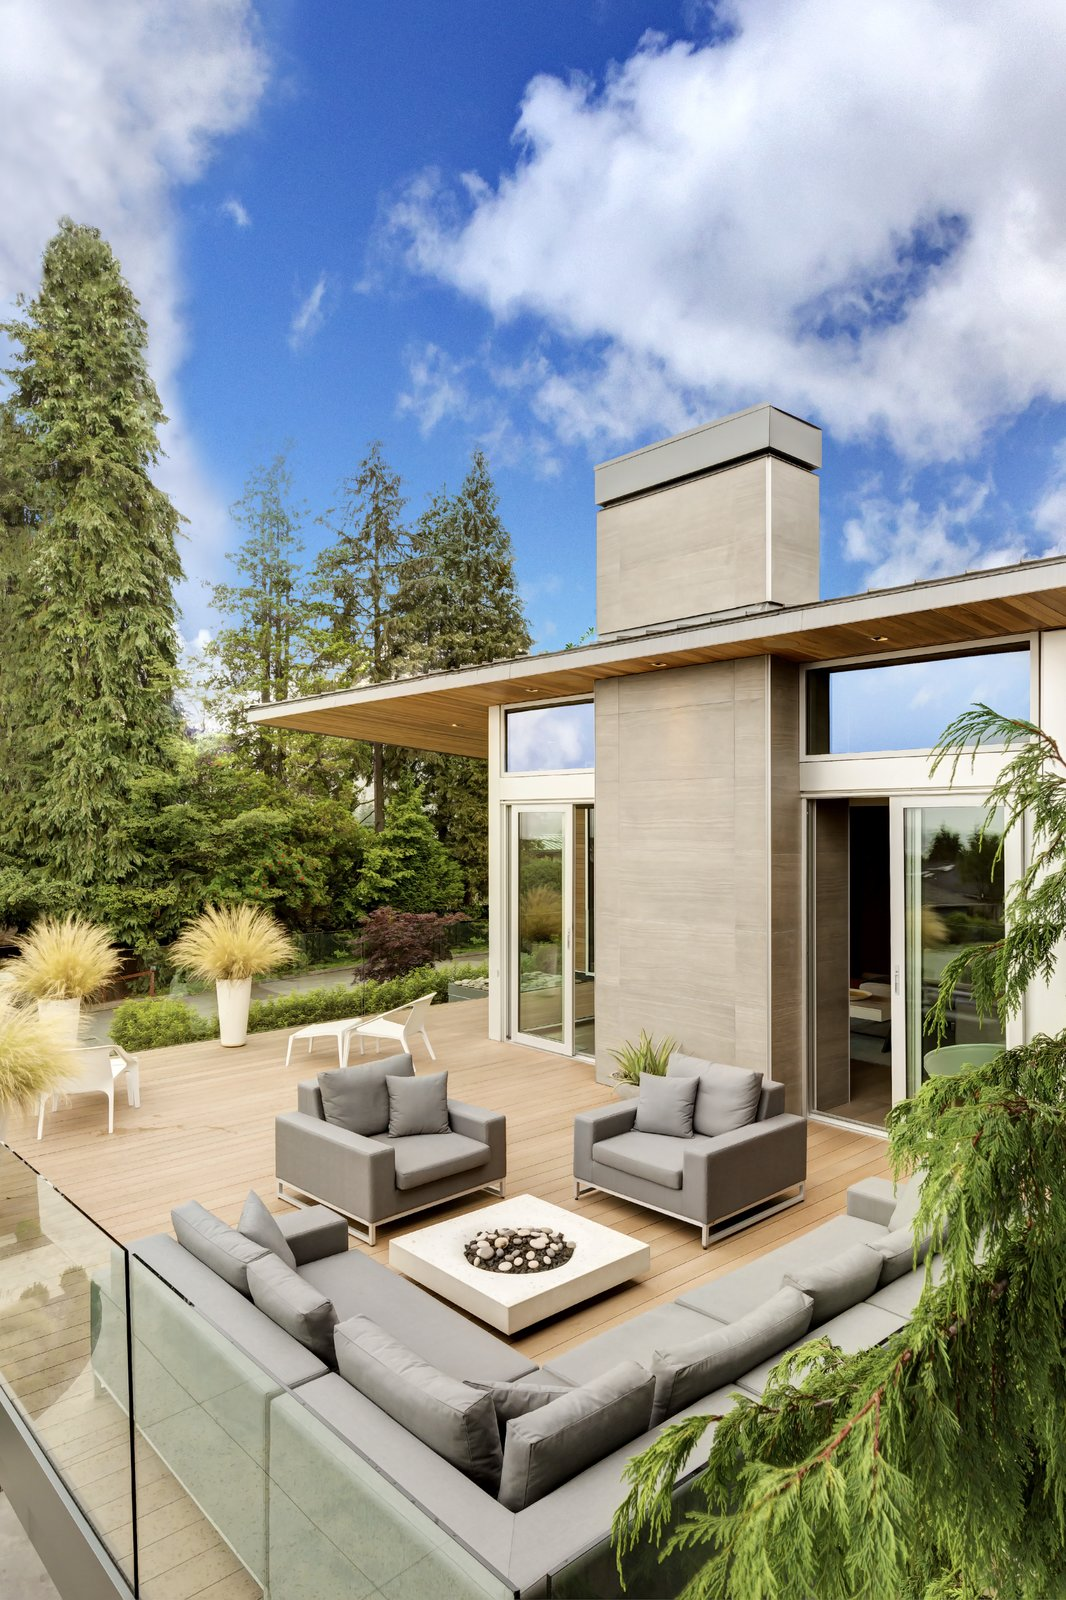 Garden Wall Residence, outdoor living  Garden Wall Residence by Garret Cord Werner